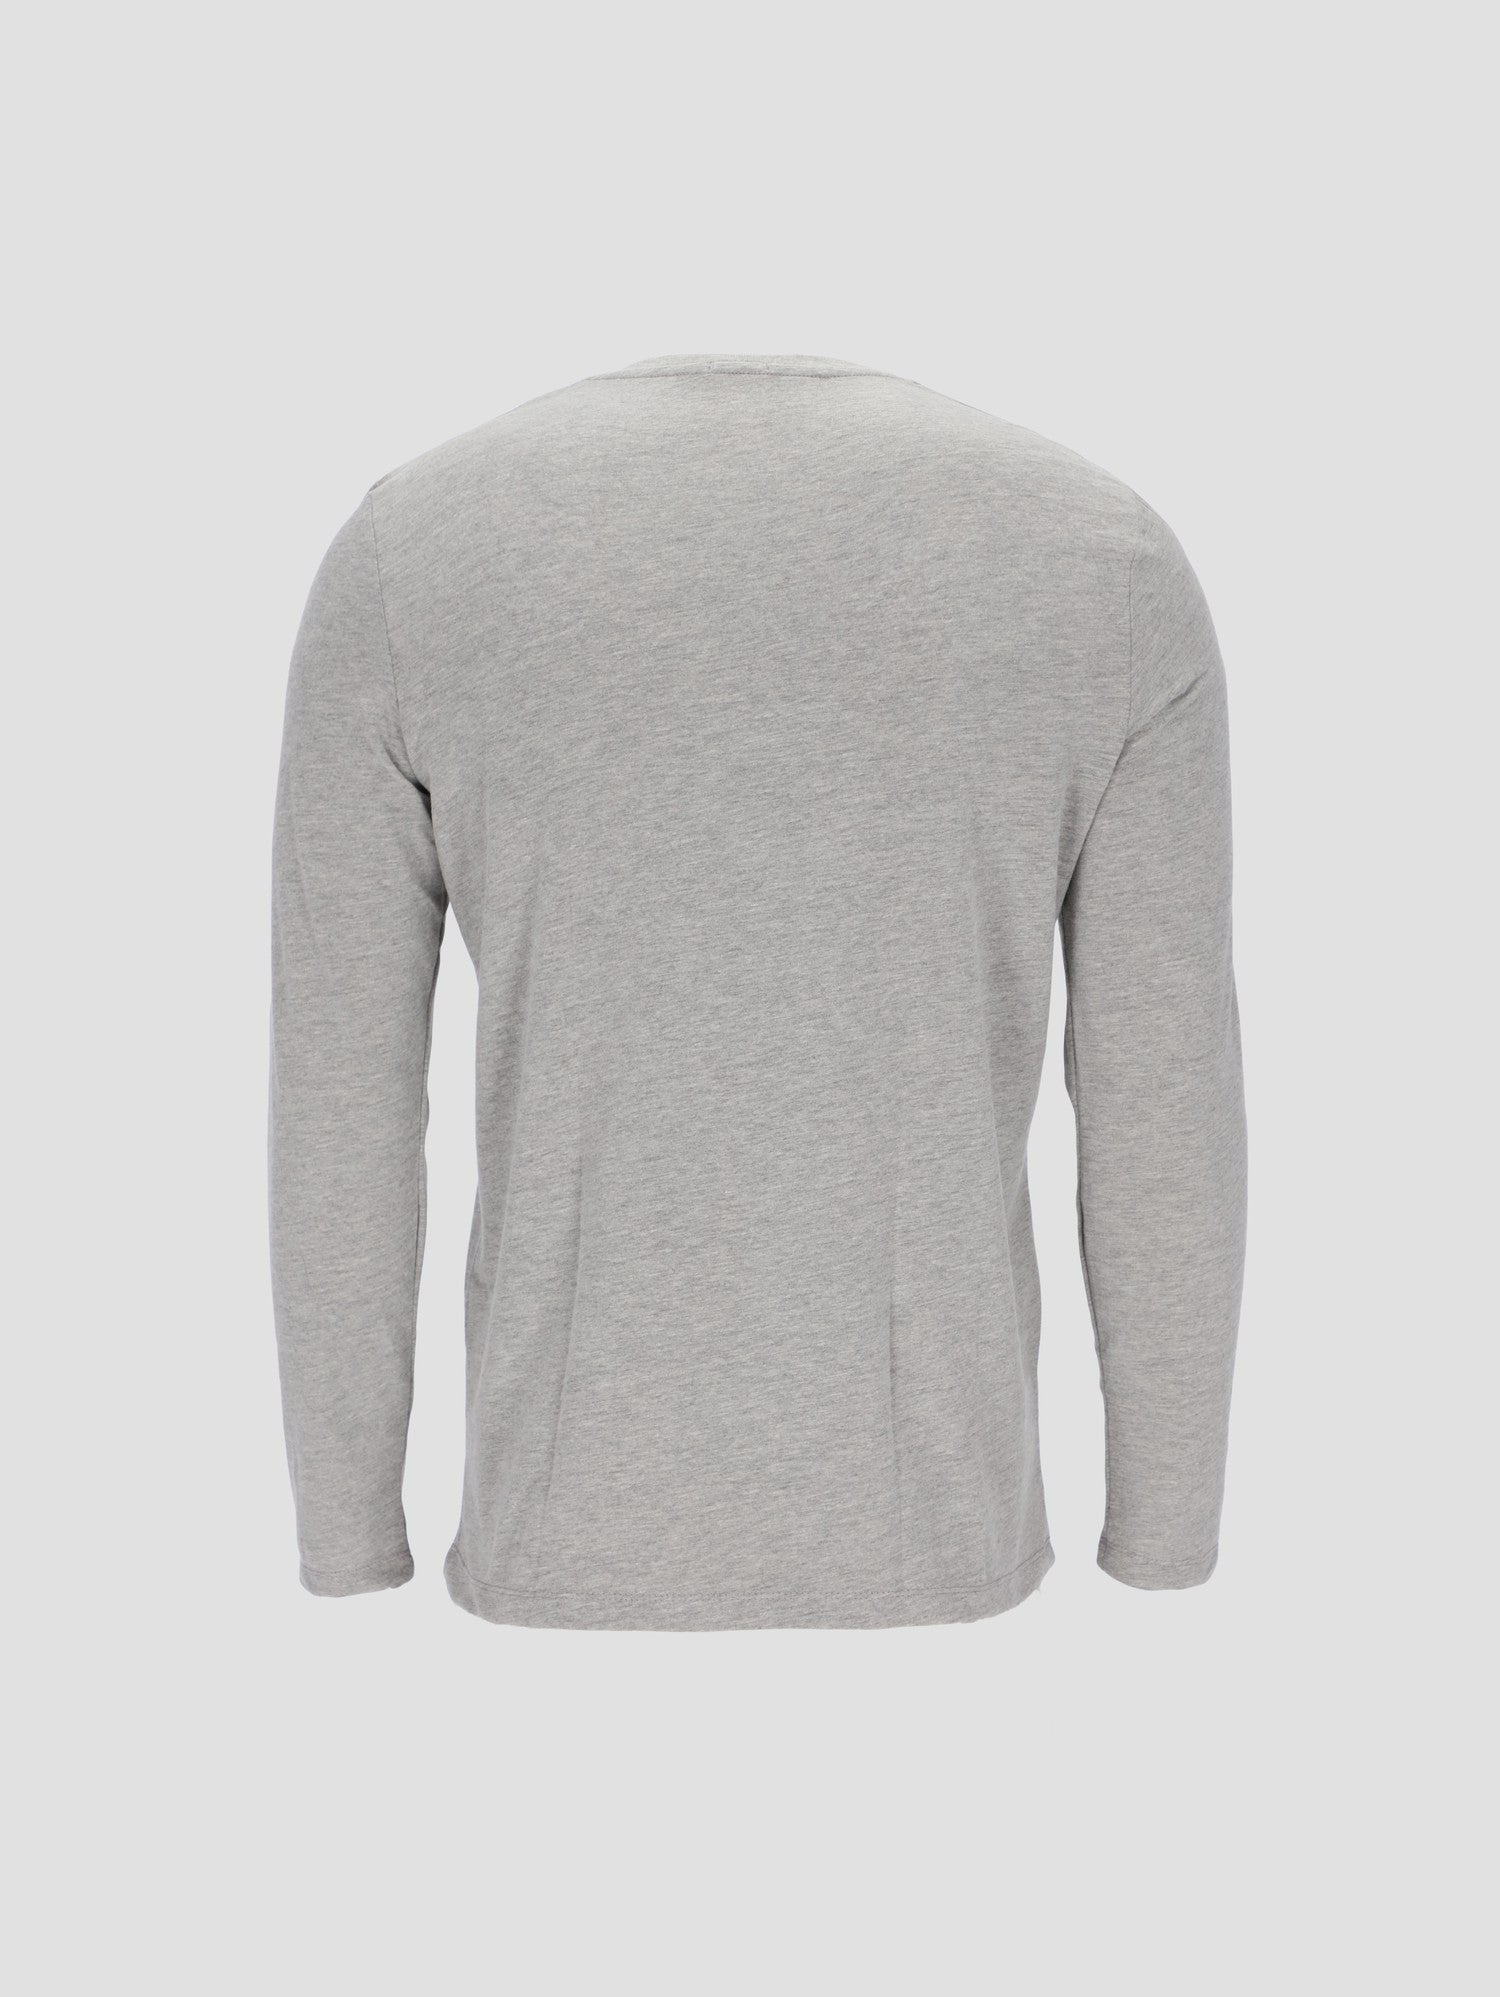 Men's Long Sleeve T-shirt with V Neck